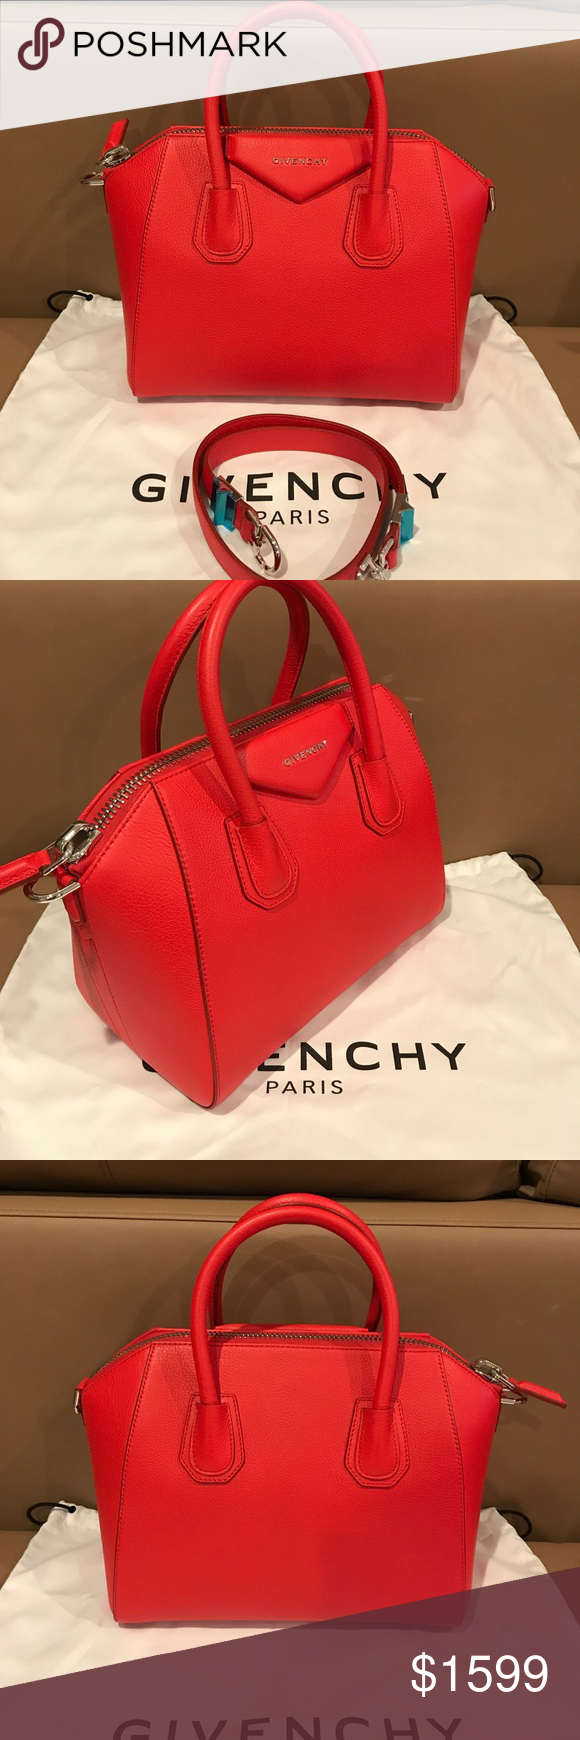 aaf6b17cd46 Givenchy Small Antigona Red Leather Satchel ! NWT New , 100% authentic  Givenchy Small Antigona